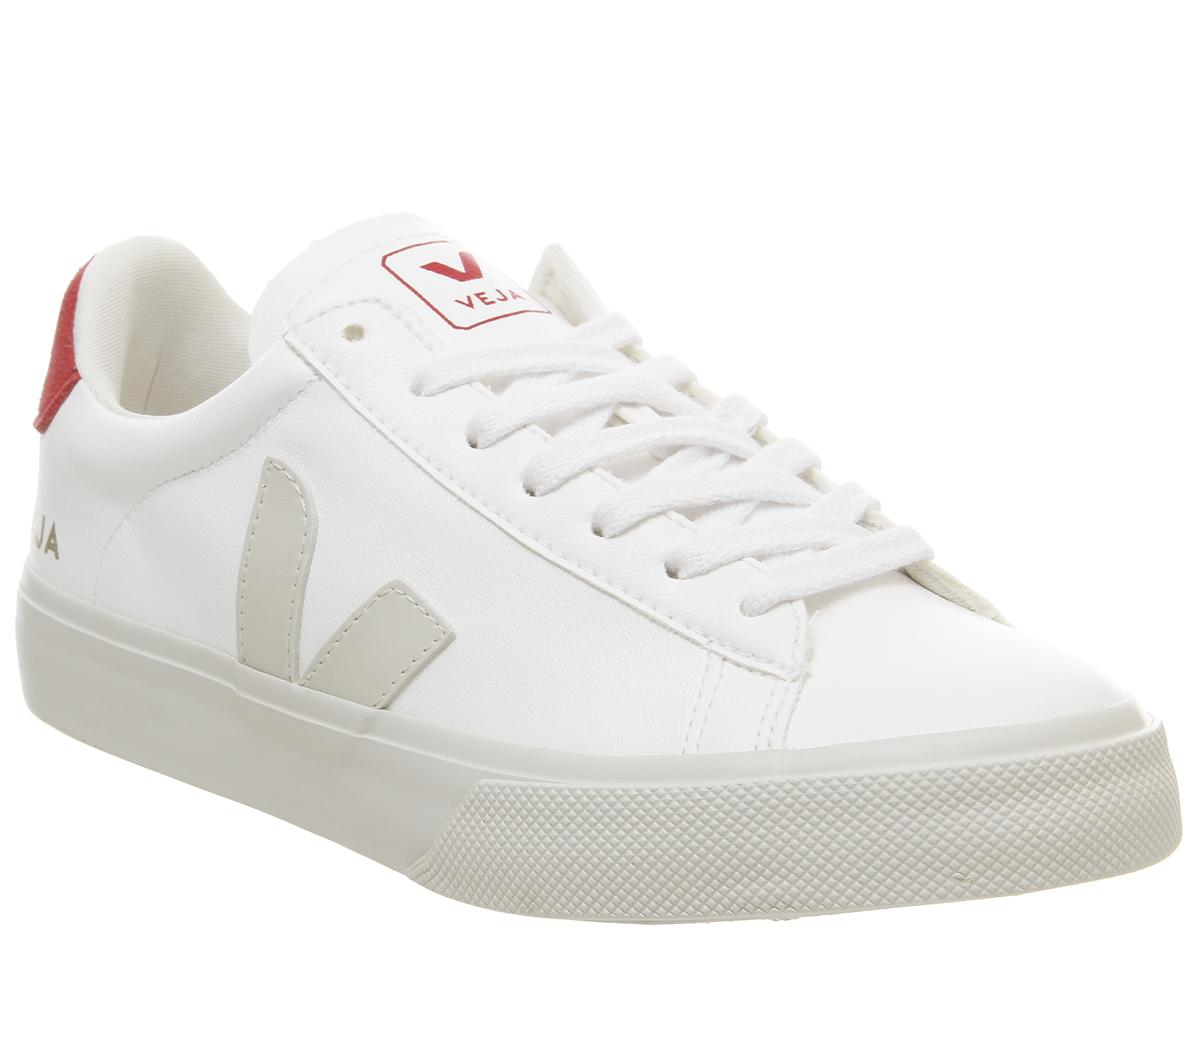 Veja Campo Trainers White Red - His